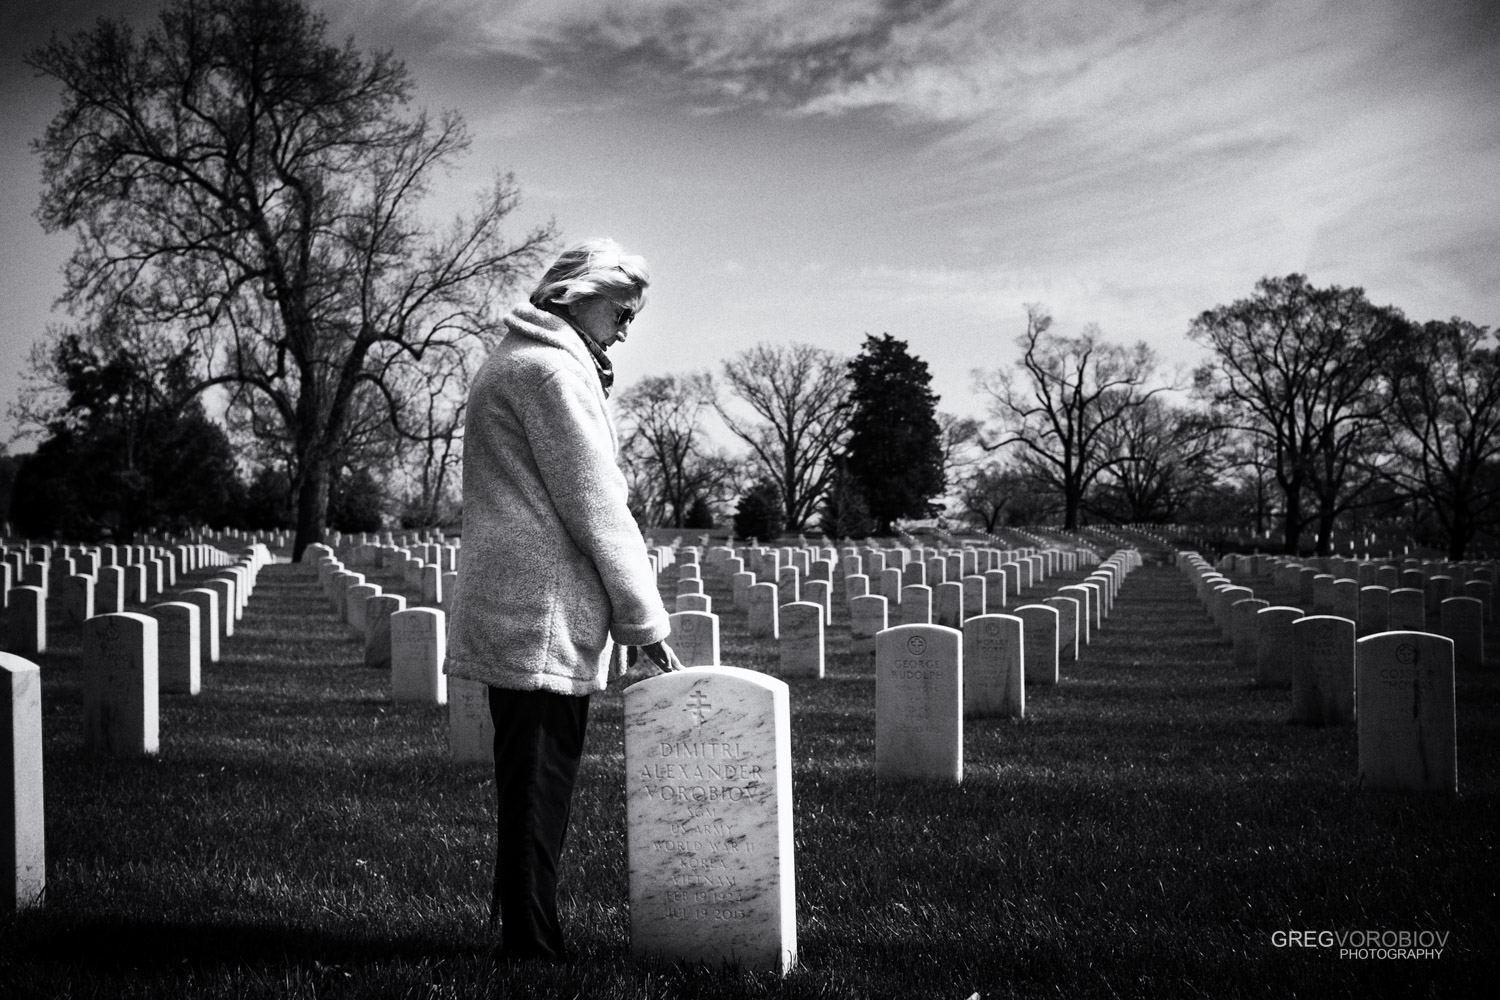 Anne, 90 year old widow graveside with her husband of nearly 60 years at Arlington Cemetery. She will be buried beside him.